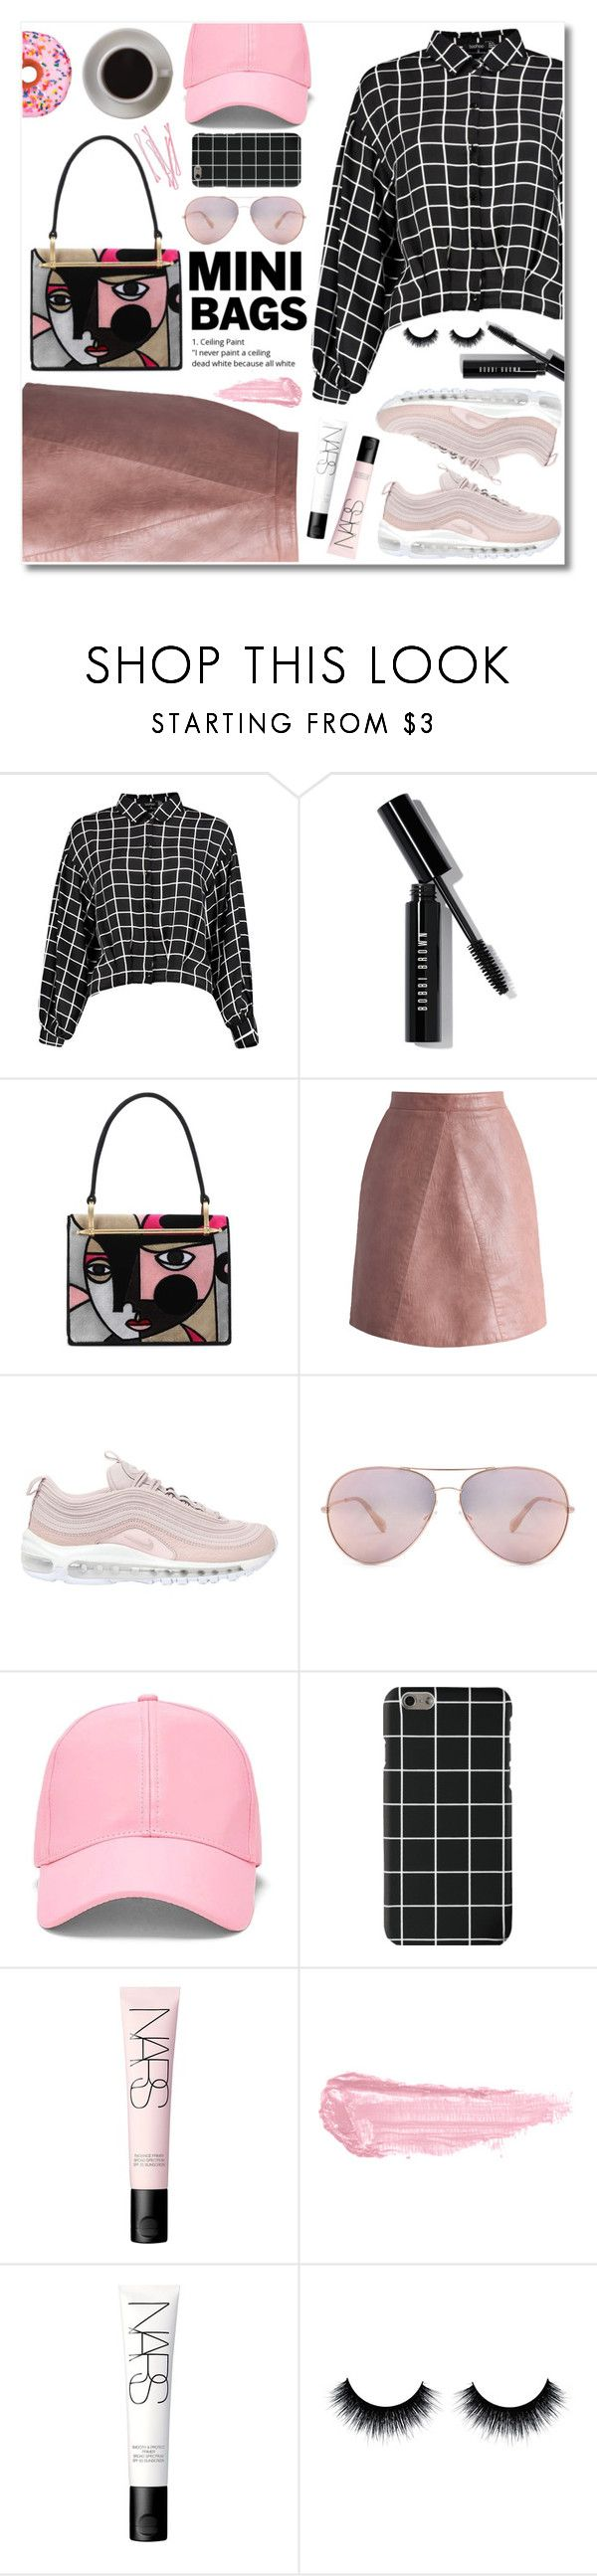 """""""pink picasso"""" by janajane90 ❤ liked on Polyvore featuring Bobbi Brown Cosmetics, Prada, Chicwish, NIKE, Forever 21, BOBBY, NARS Cosmetics, By Terry, Bunn and Iscream"""